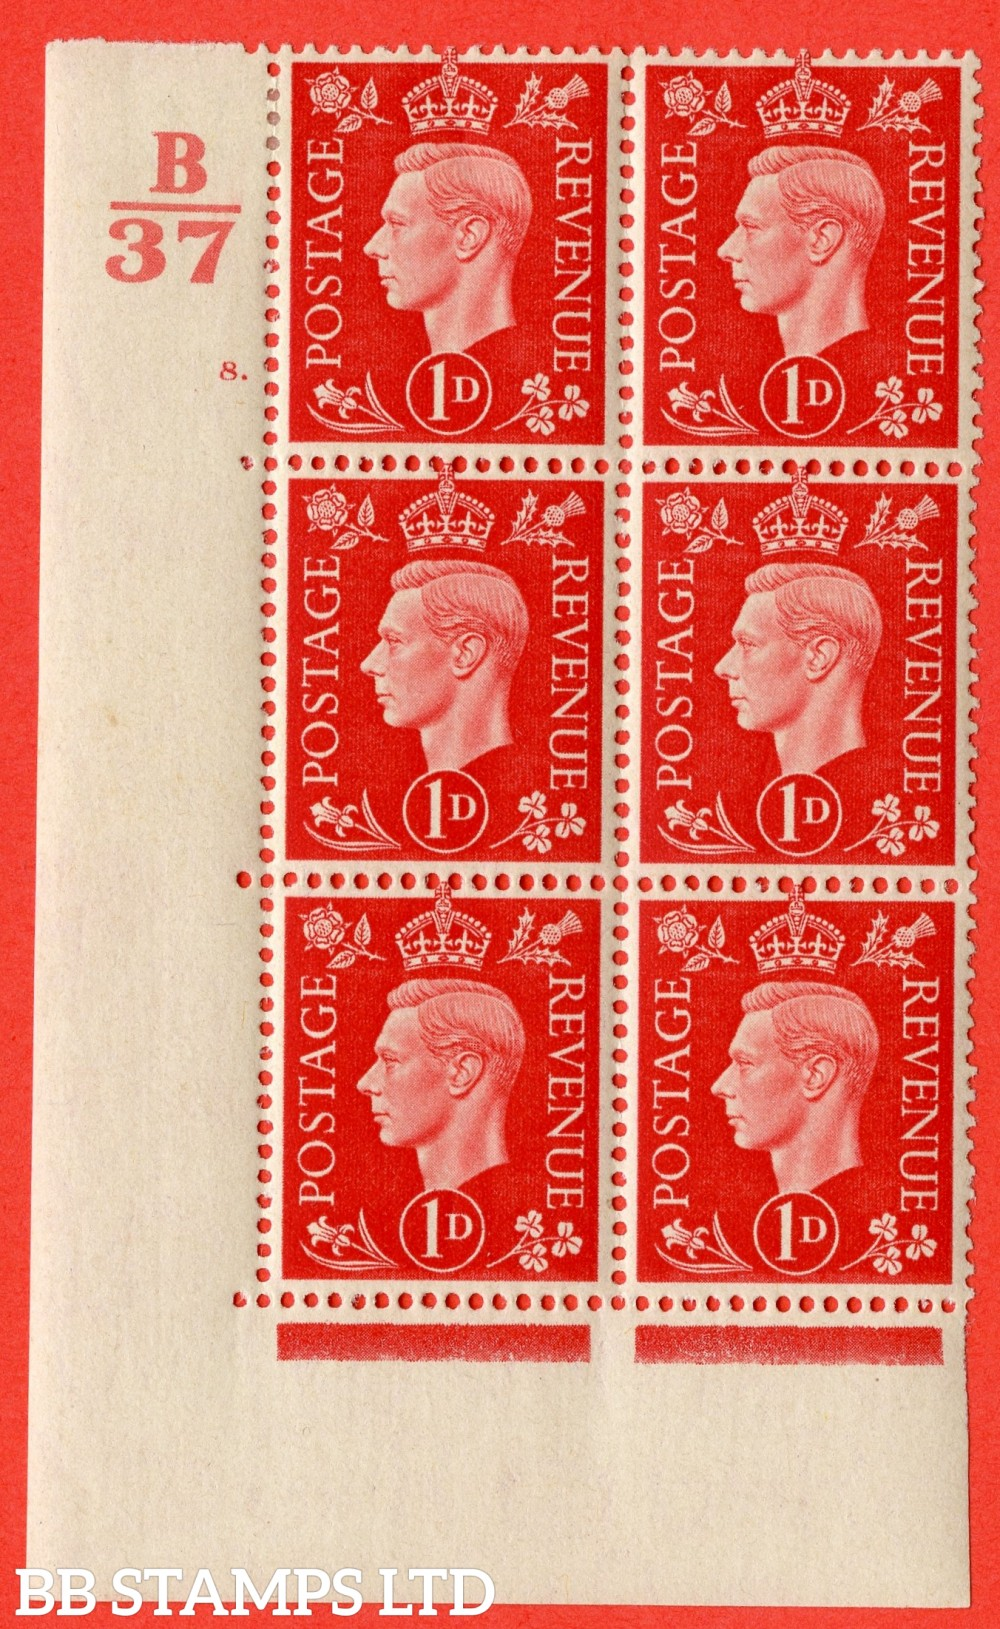 "SG. 463. Q4. 1d Scarlet. A very fine lightly mounted mint "" Control B37 cylinder 8 dot "" block of 6 with perf type 5 E/I with marginal rule."